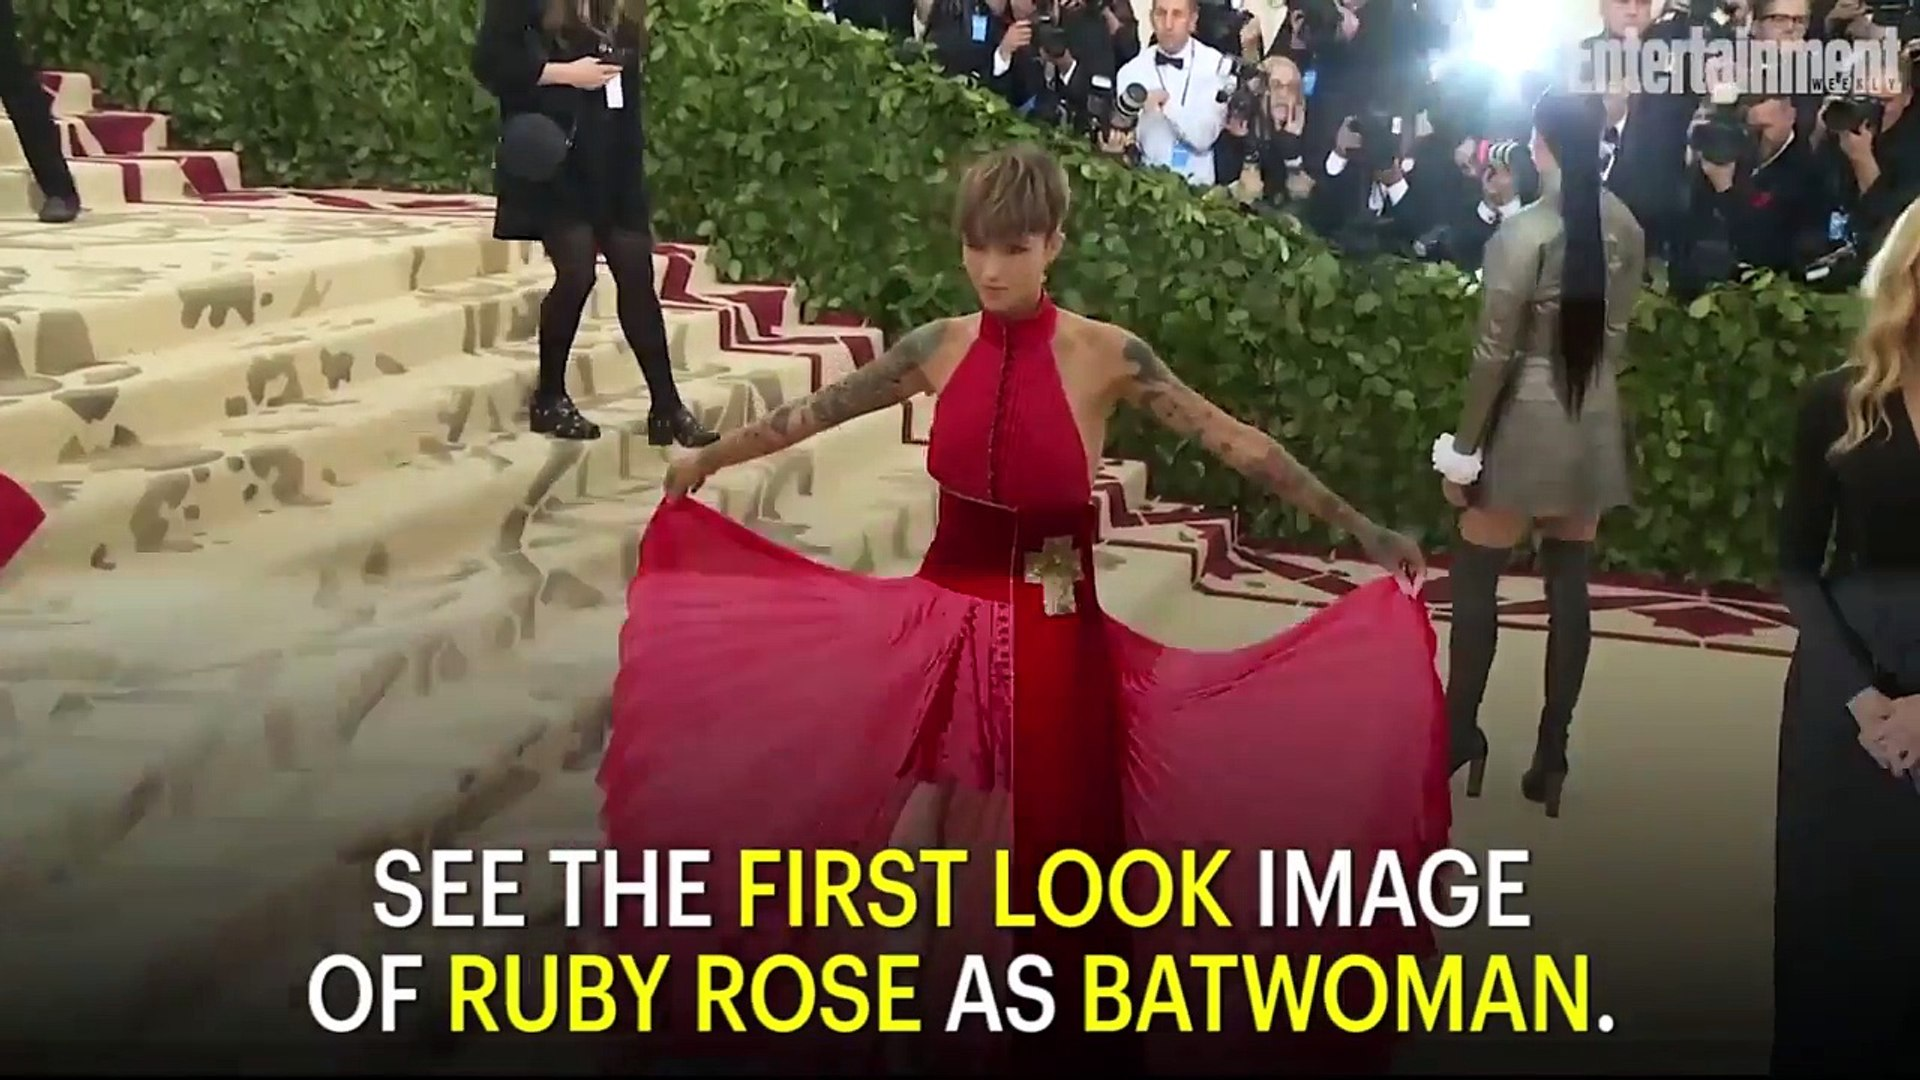 Ruby Rose Suits Up As The CW's Batwoman In First Look Image   News Flash   Entertainment Weekly